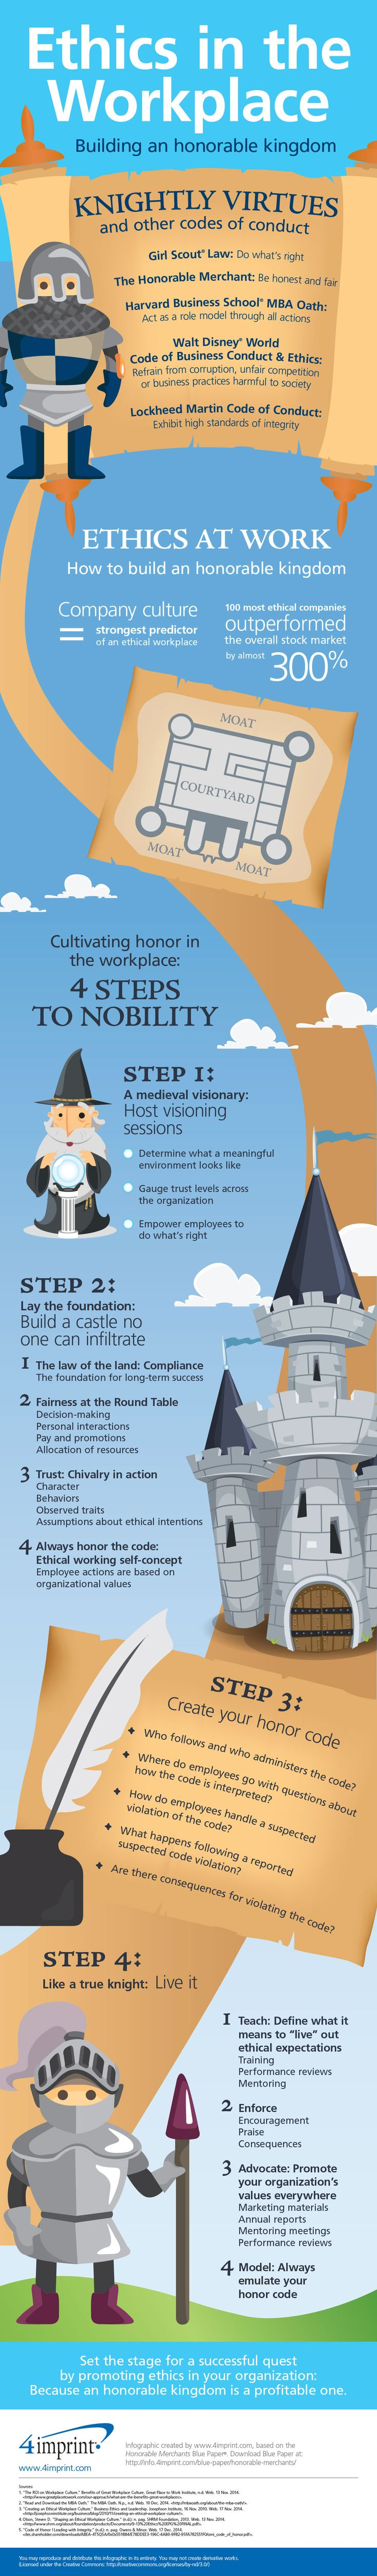 22 best ethical problems in business images on pinterest business 4imprints ethics in the workplace infographic offers organizations a four step guide to instill honor fandeluxe Image collections